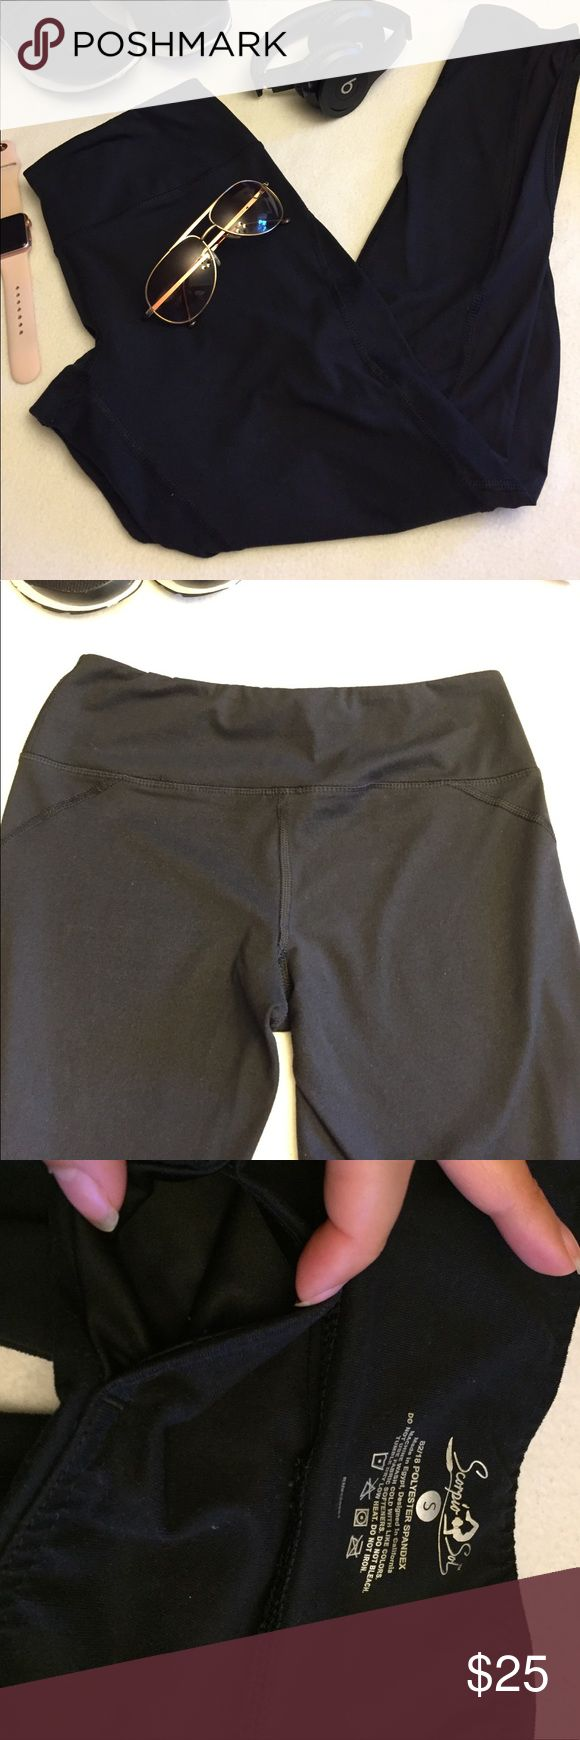 Sheer Scorpio Sol size small Super cute sheer sides of legs spandex pants super cute. Never worn. No tags attached scorpio sol Pants Leggings